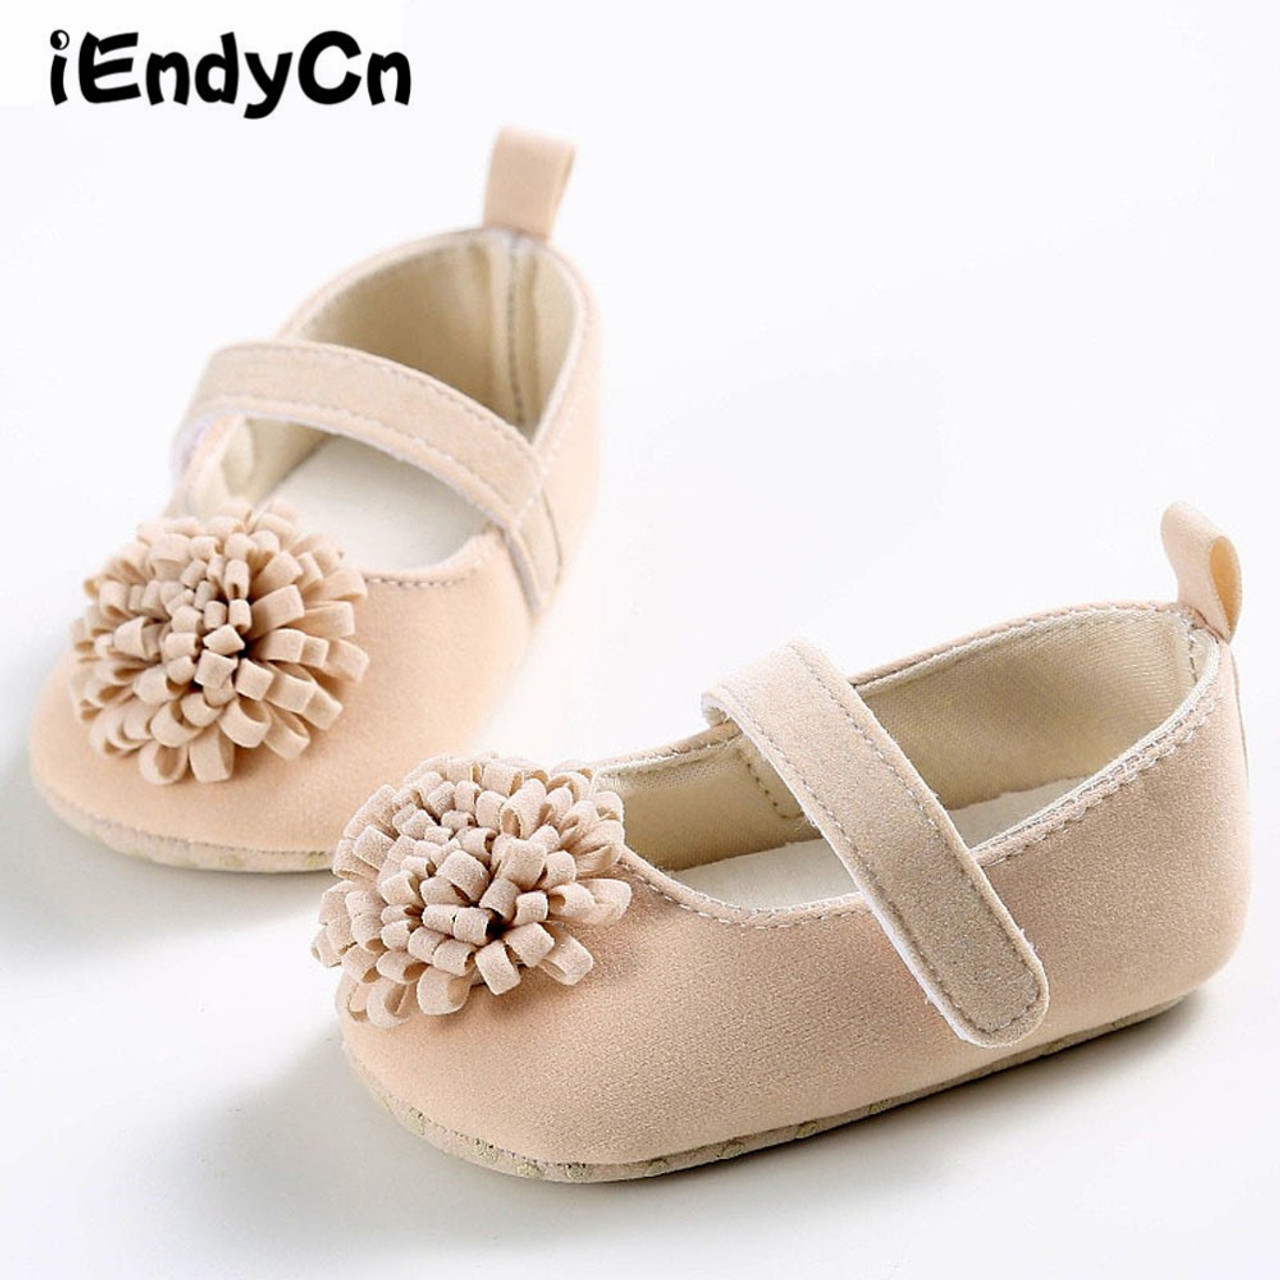 f2d0ecd53d434 Baby Girl Crib Shoes 0-1 Year old Summer Baby Girl Shoes Newborn Soft  Bottom Flowers Princess Series Baby Shoes YD221R